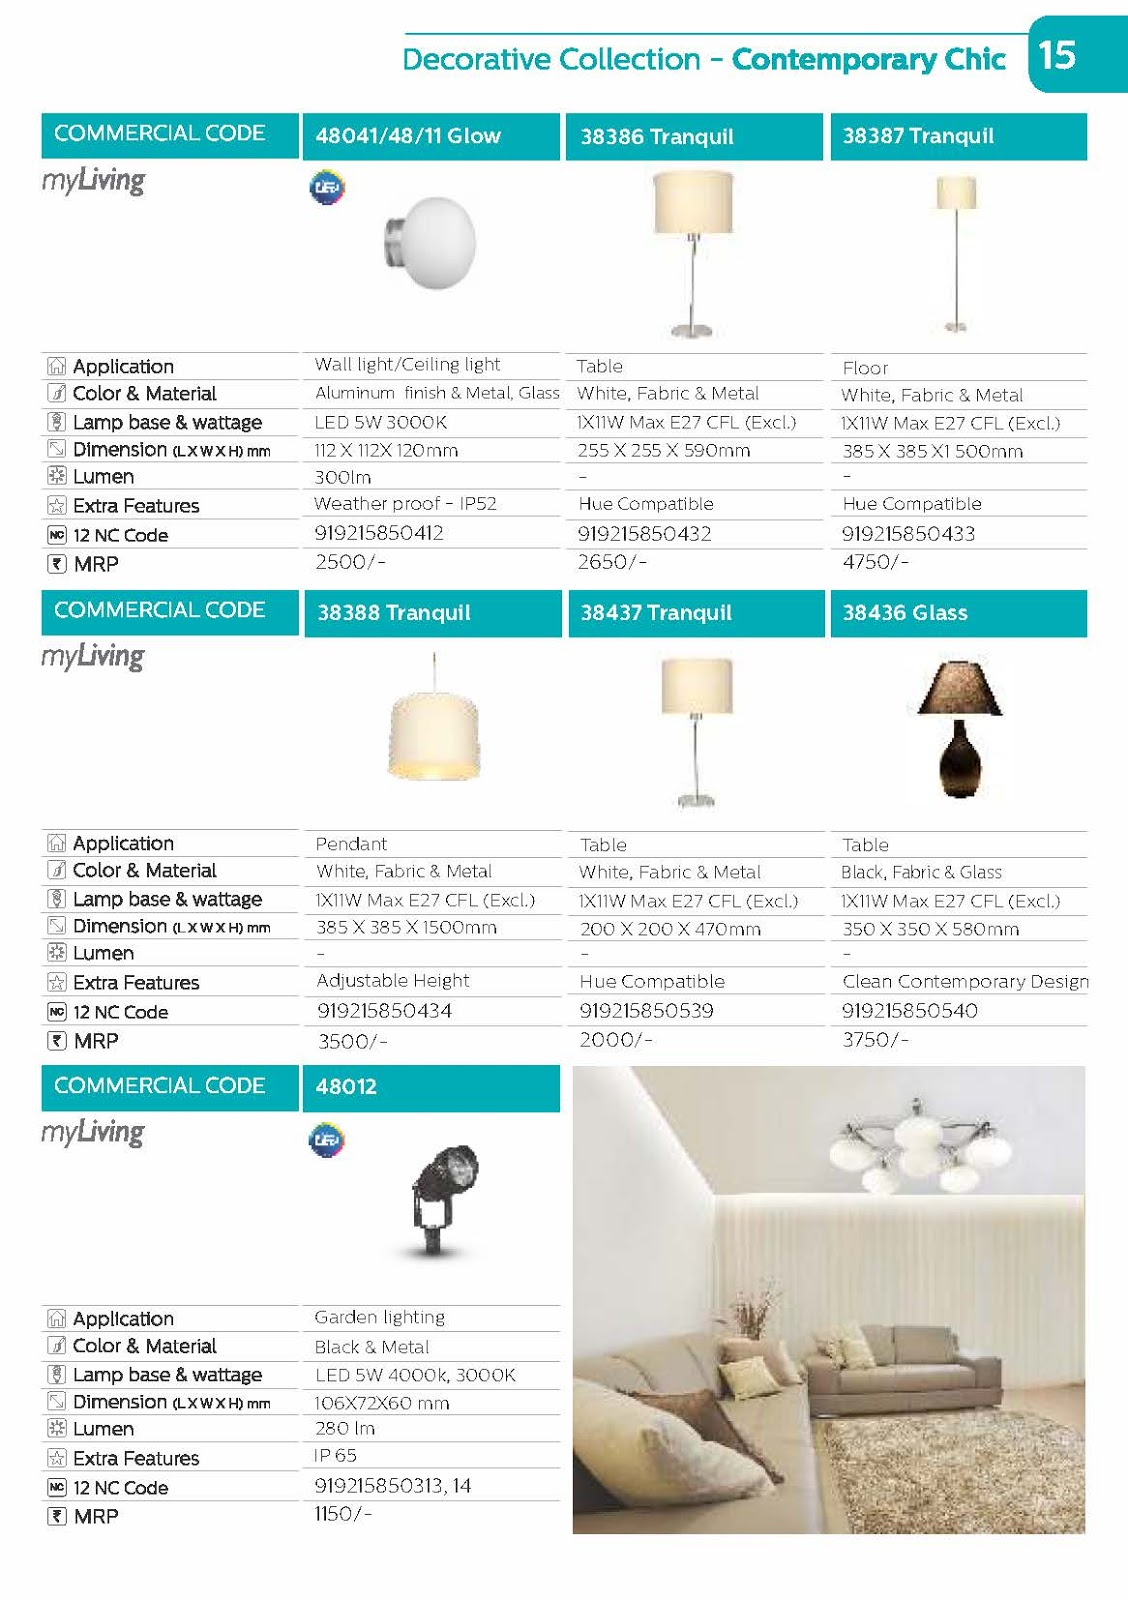 Philips home decorative lights: DELHI NCR PHILIPS LED ...